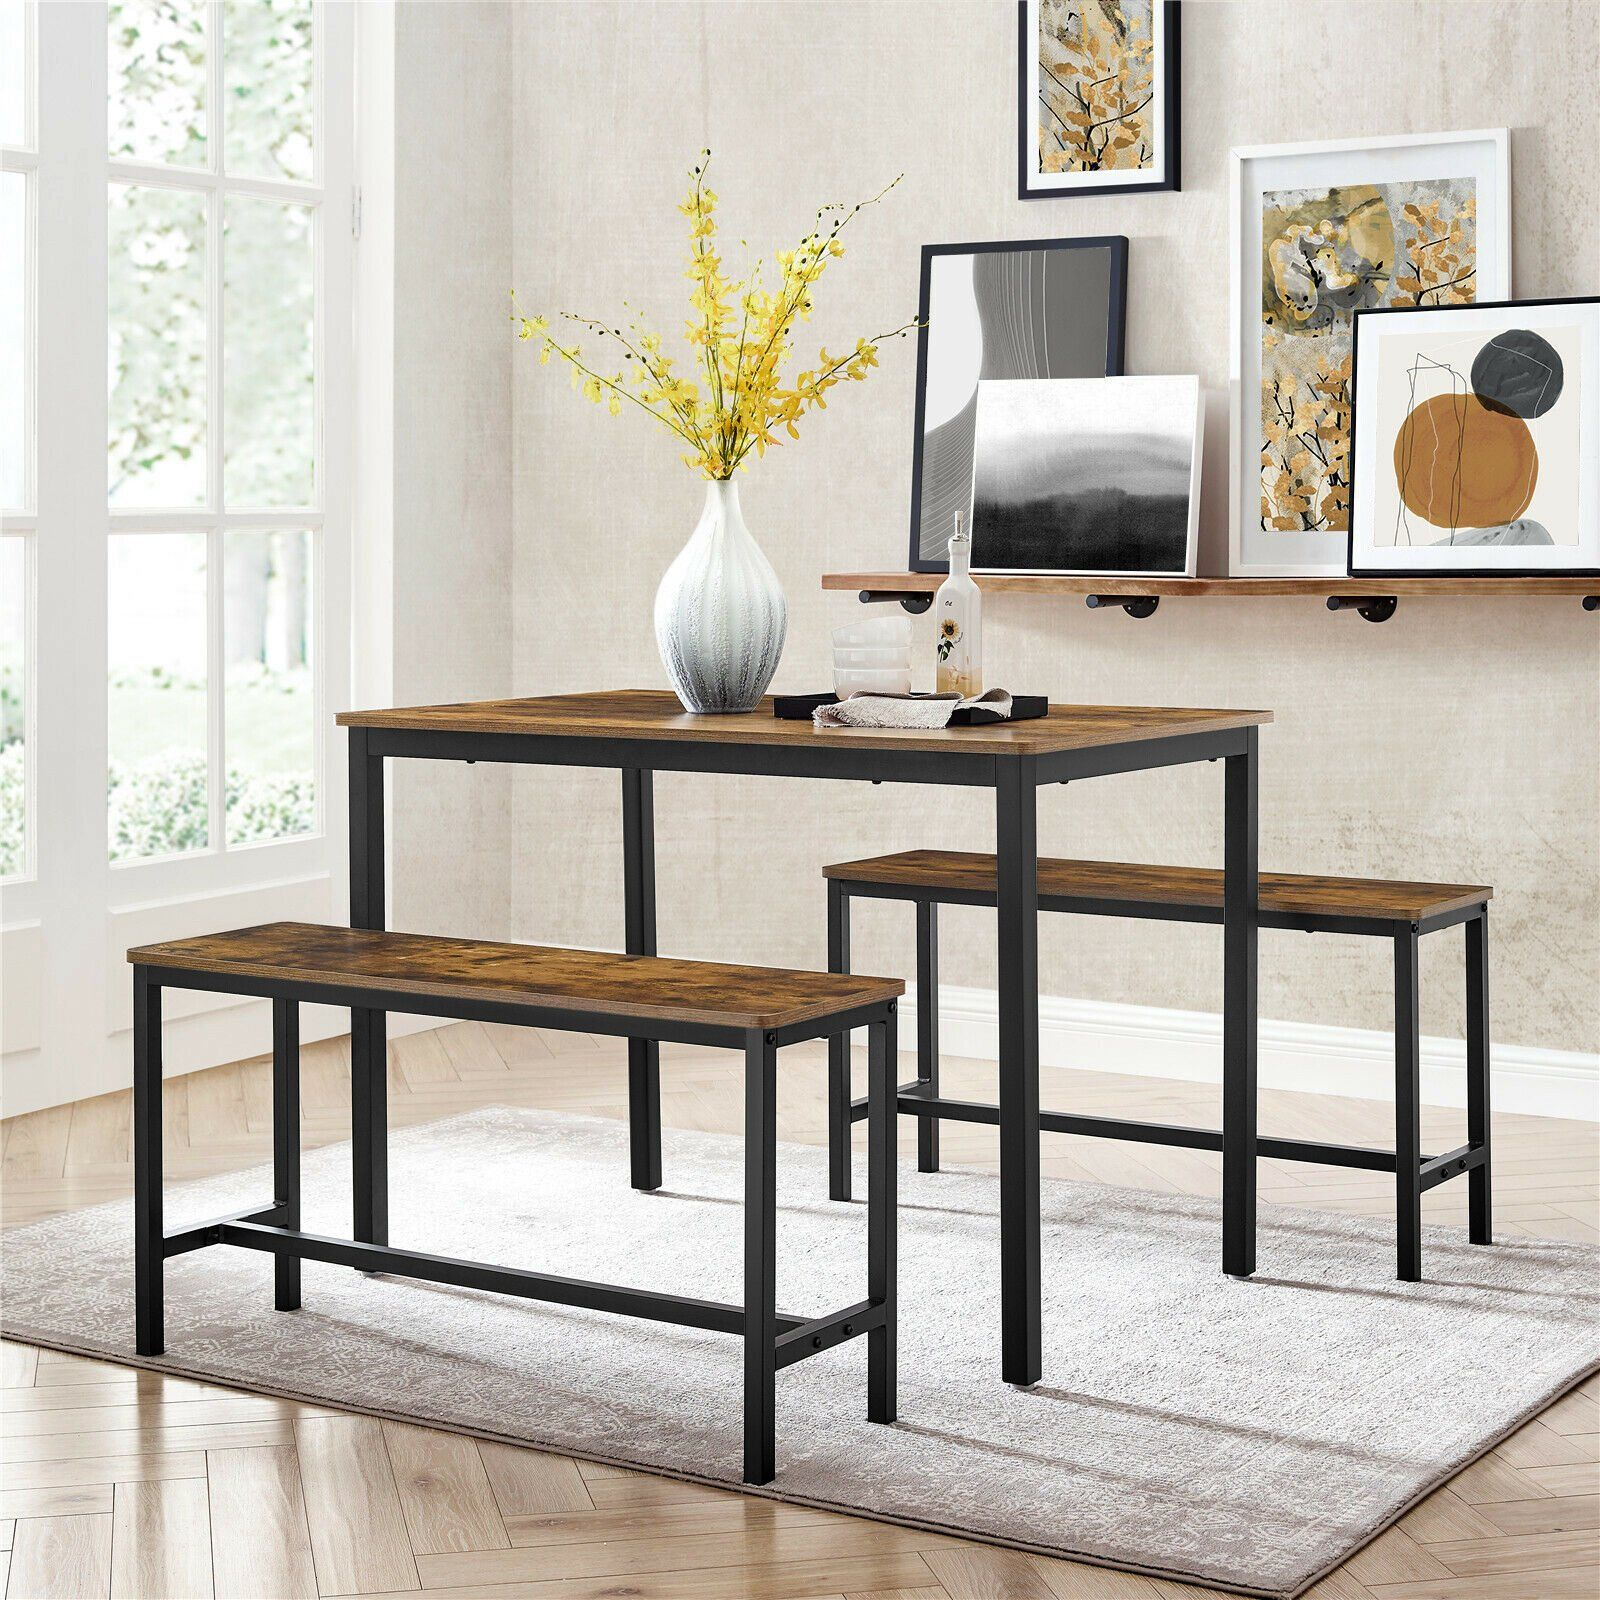 Photo of Rena Rustic Dining Table and Bench Set